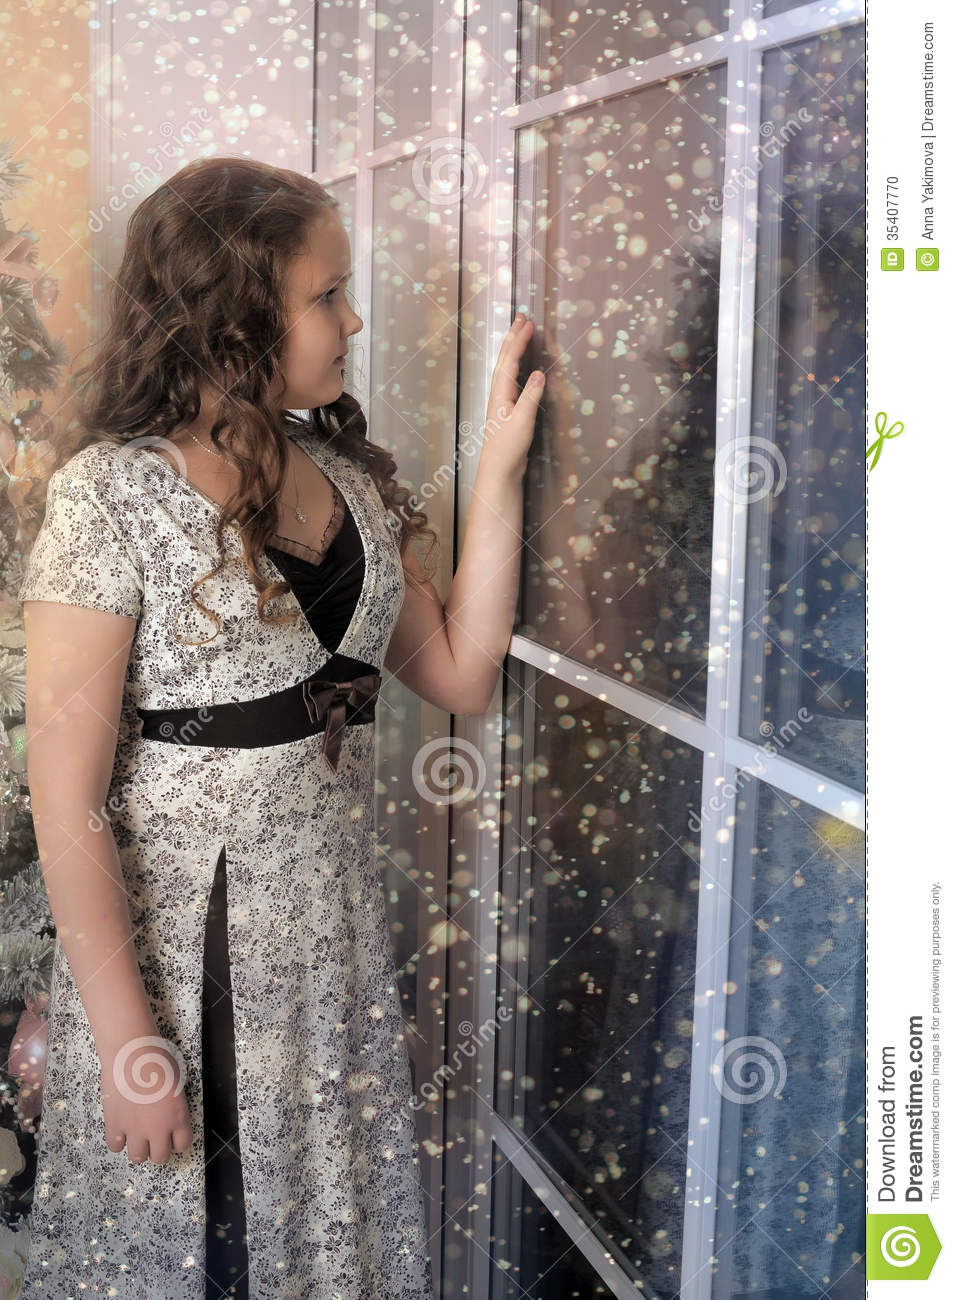 Girl Looking Out The Window Stock Photo - Image 35407770-7435